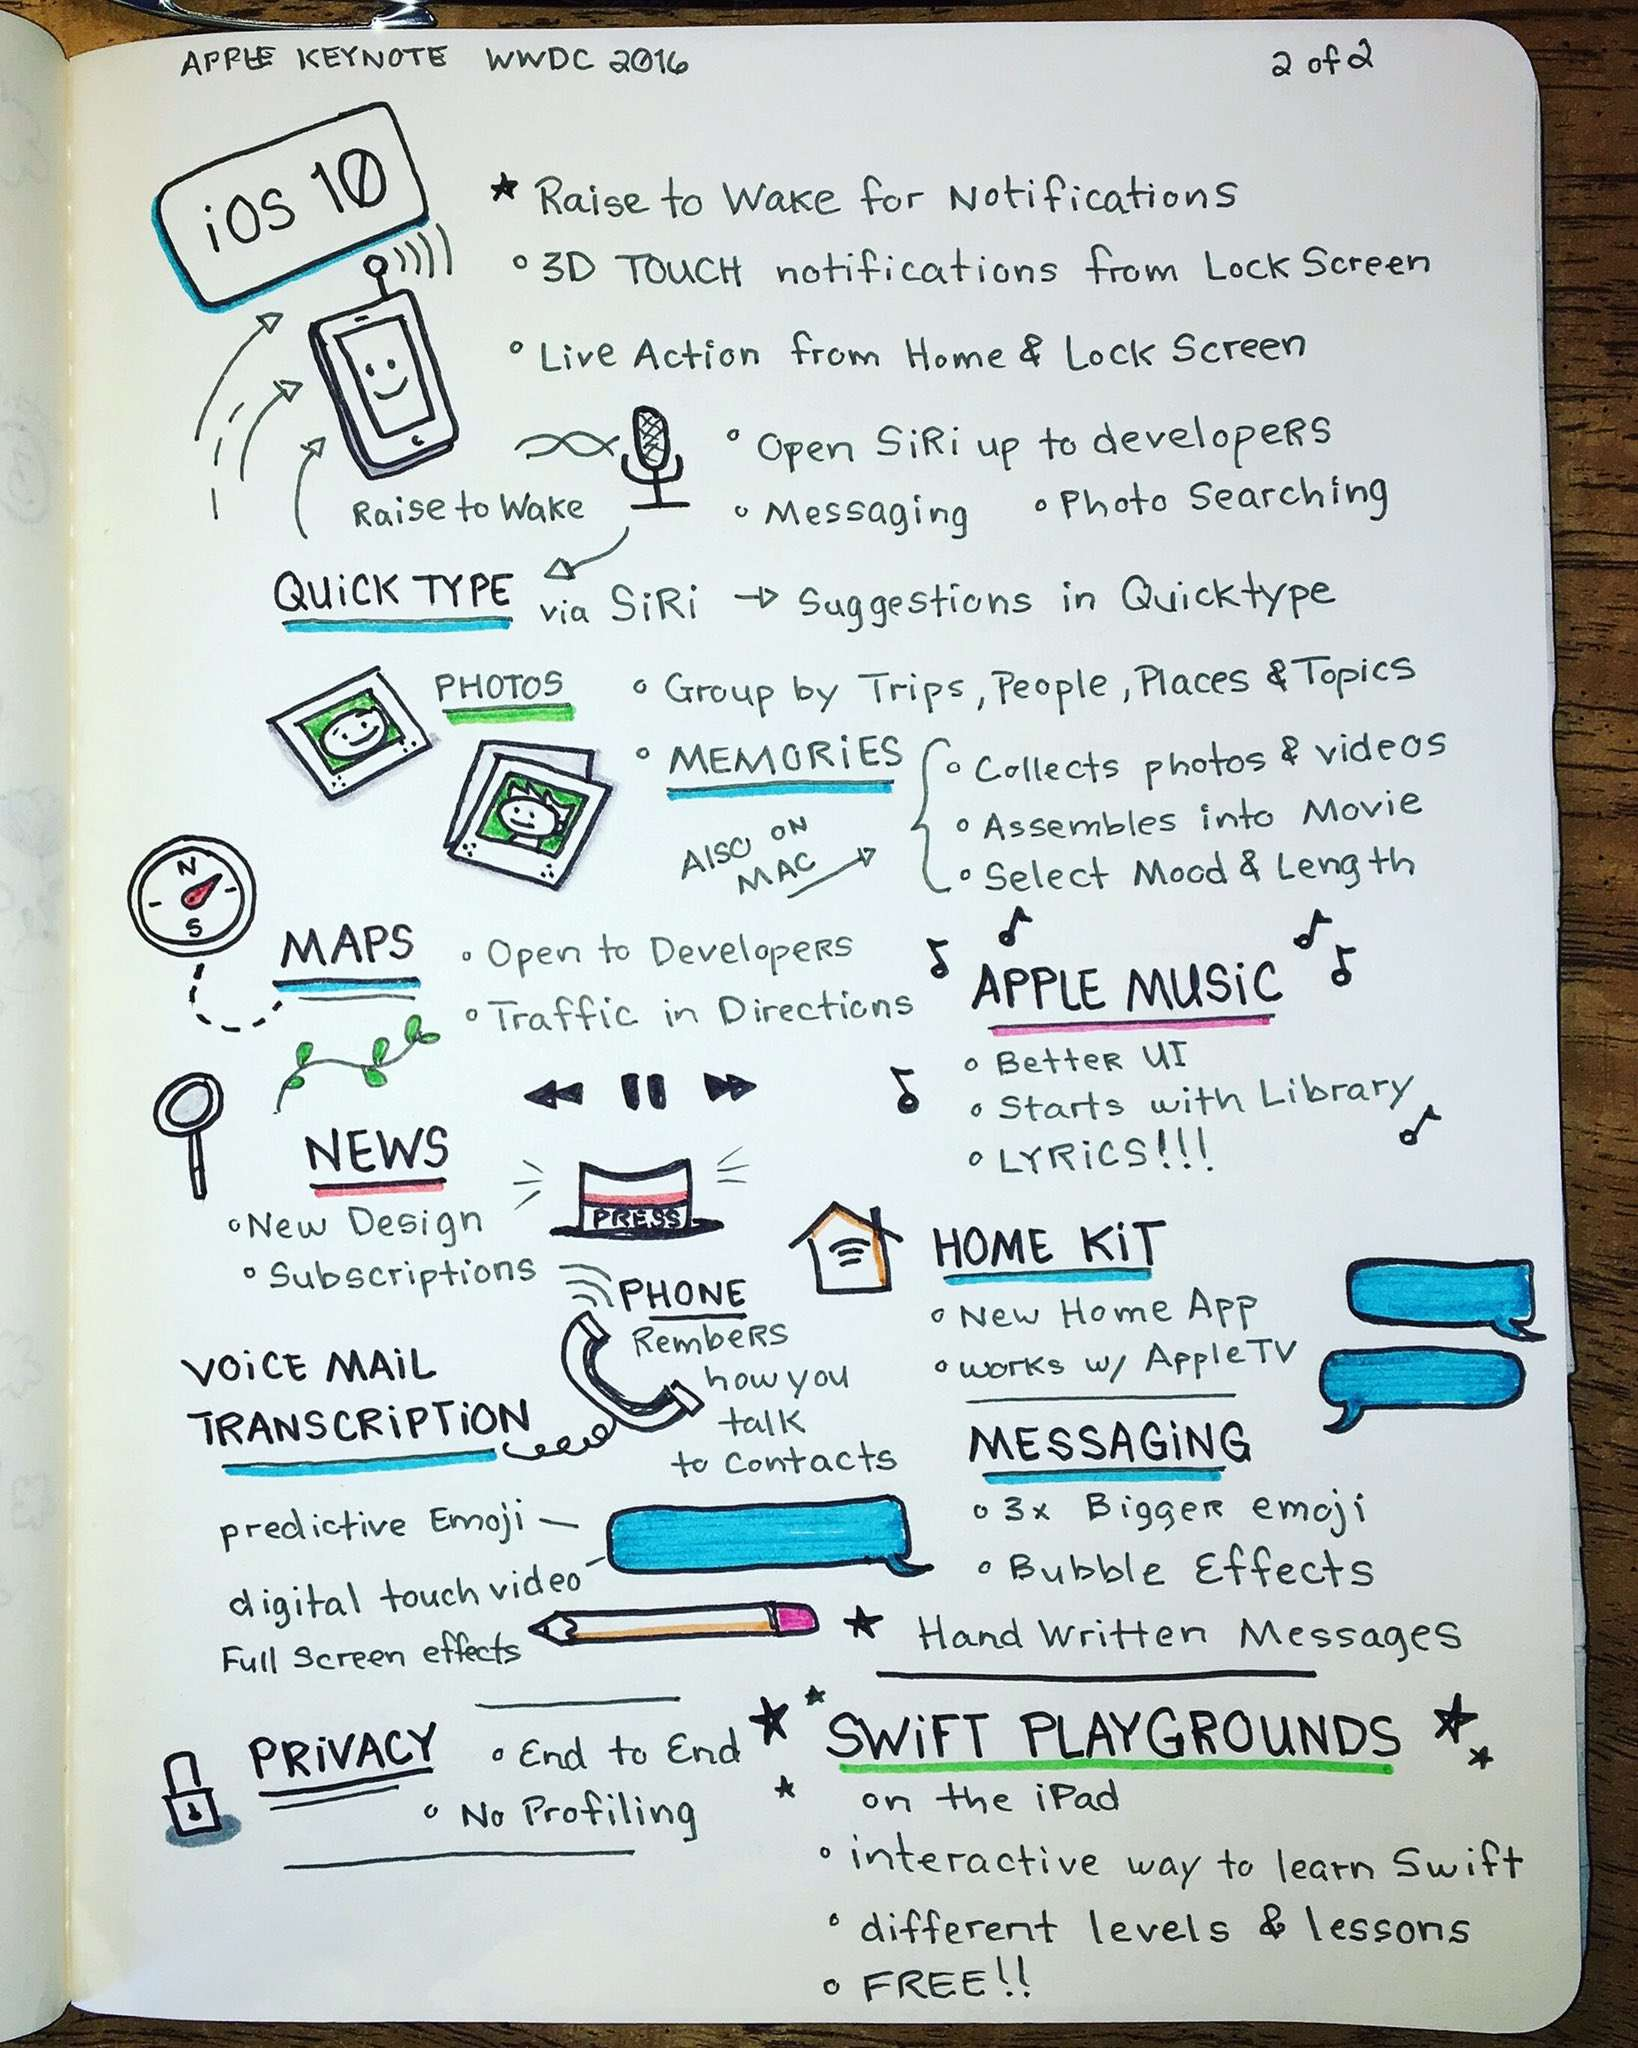 Apple's 2016 WWDC Keynote. Sketchnote 2 of 2